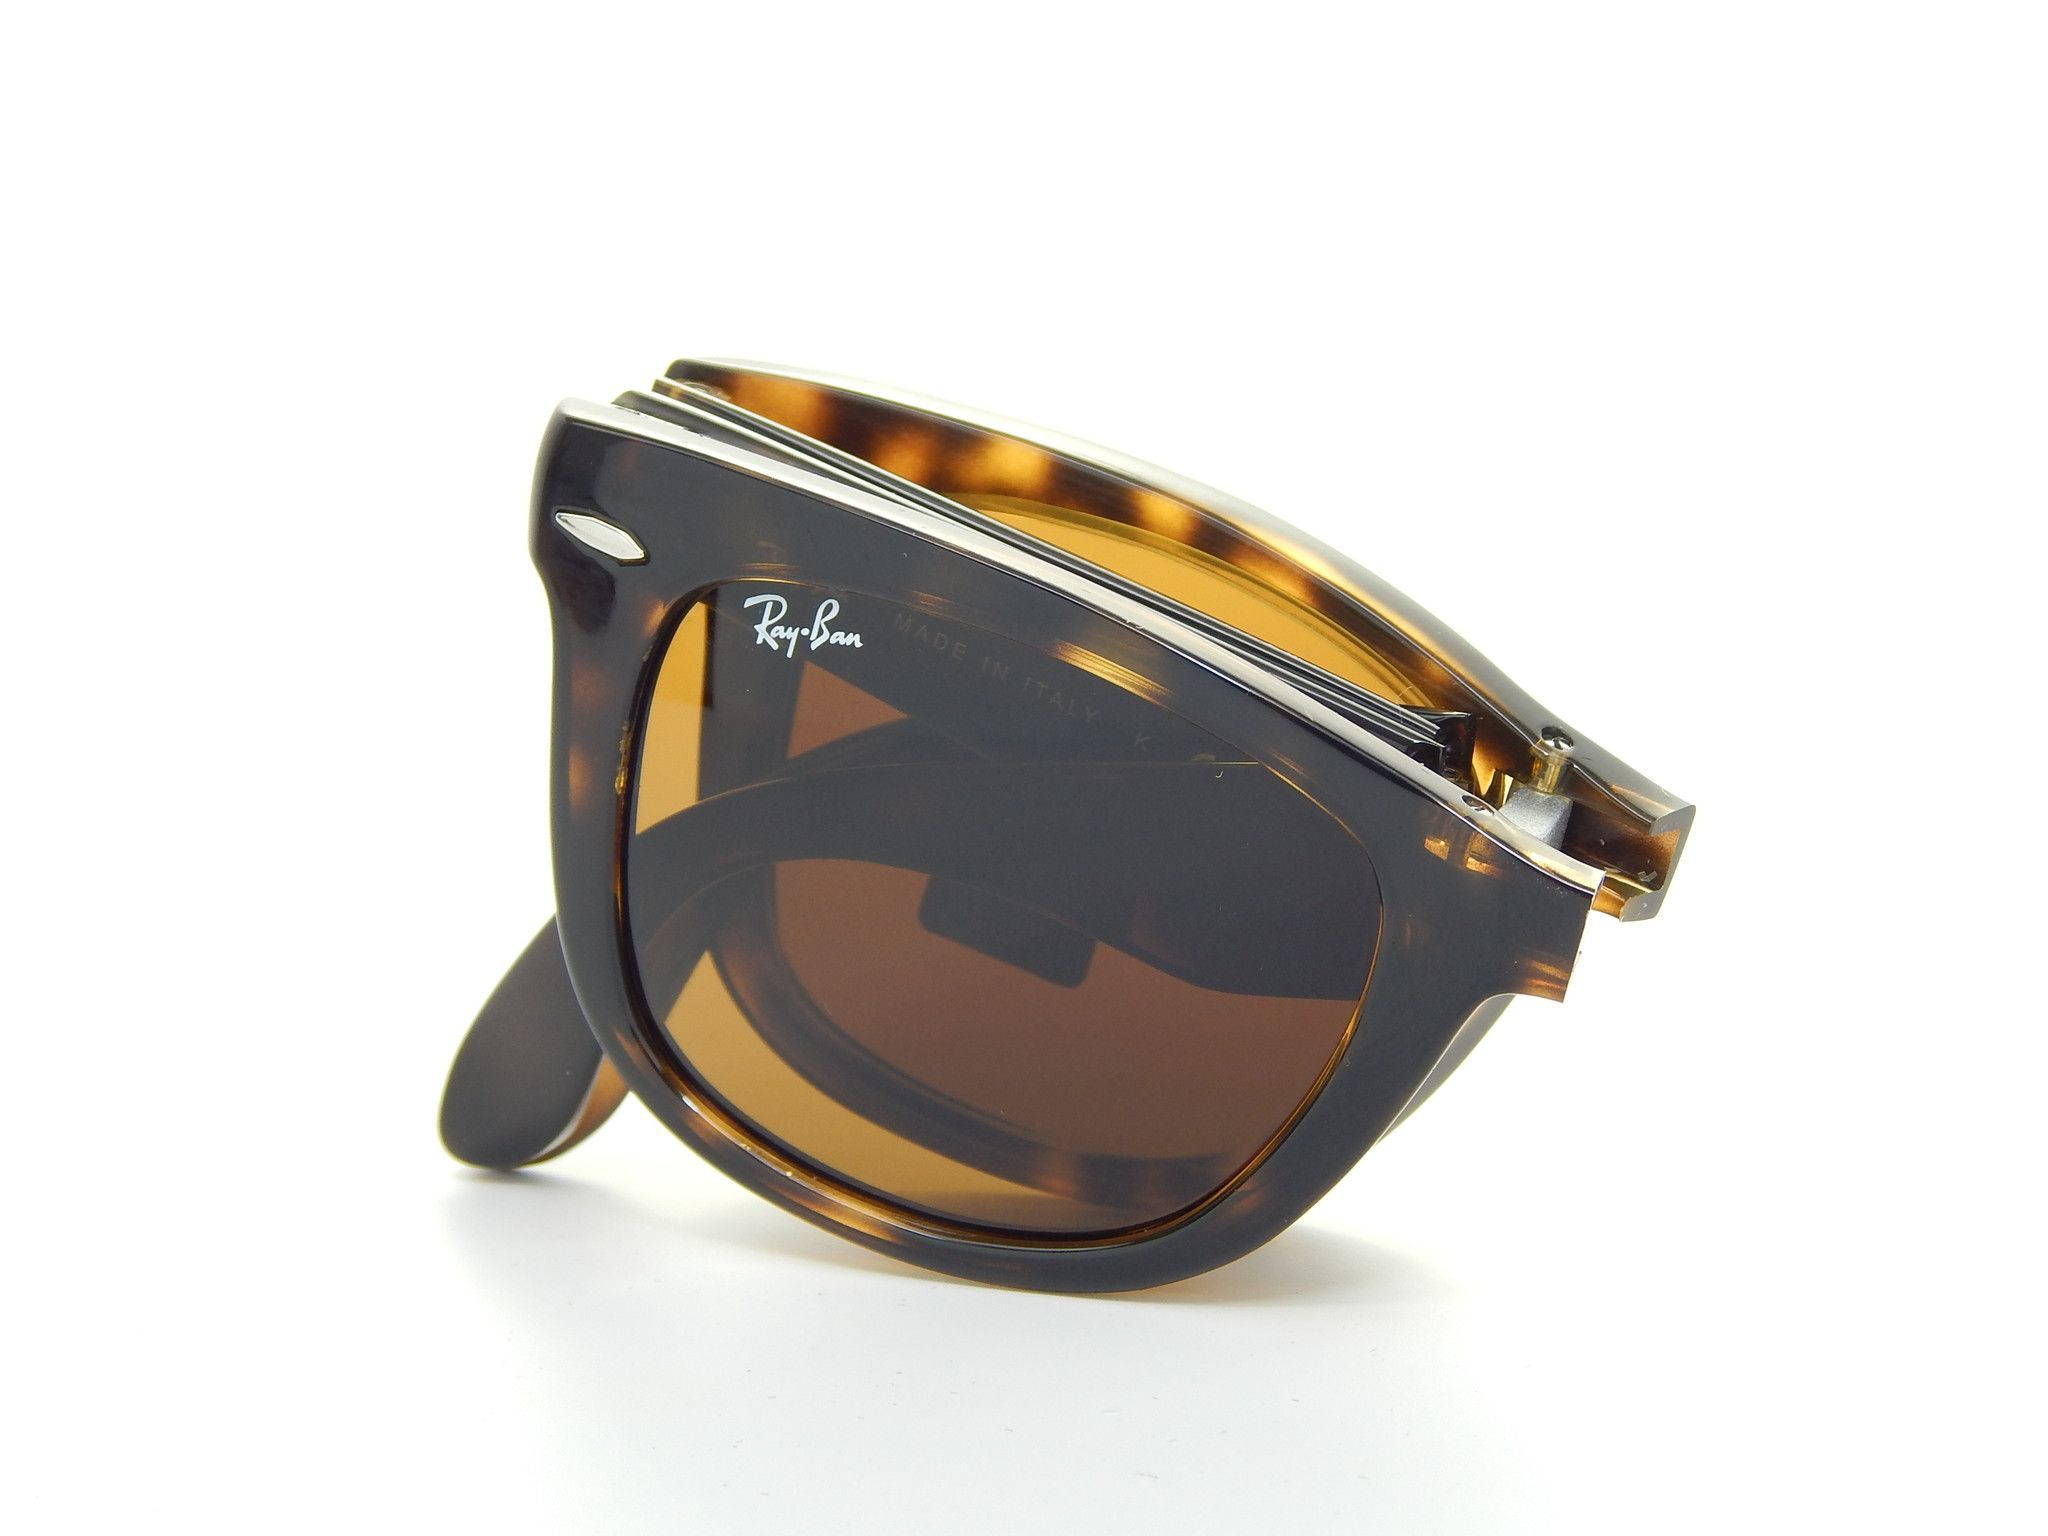 855da1daab524 Ray Ban Folding Wayfarer RB4105 710 Tortoise Brown Classic B-15 54mm  Sunglasses Ray